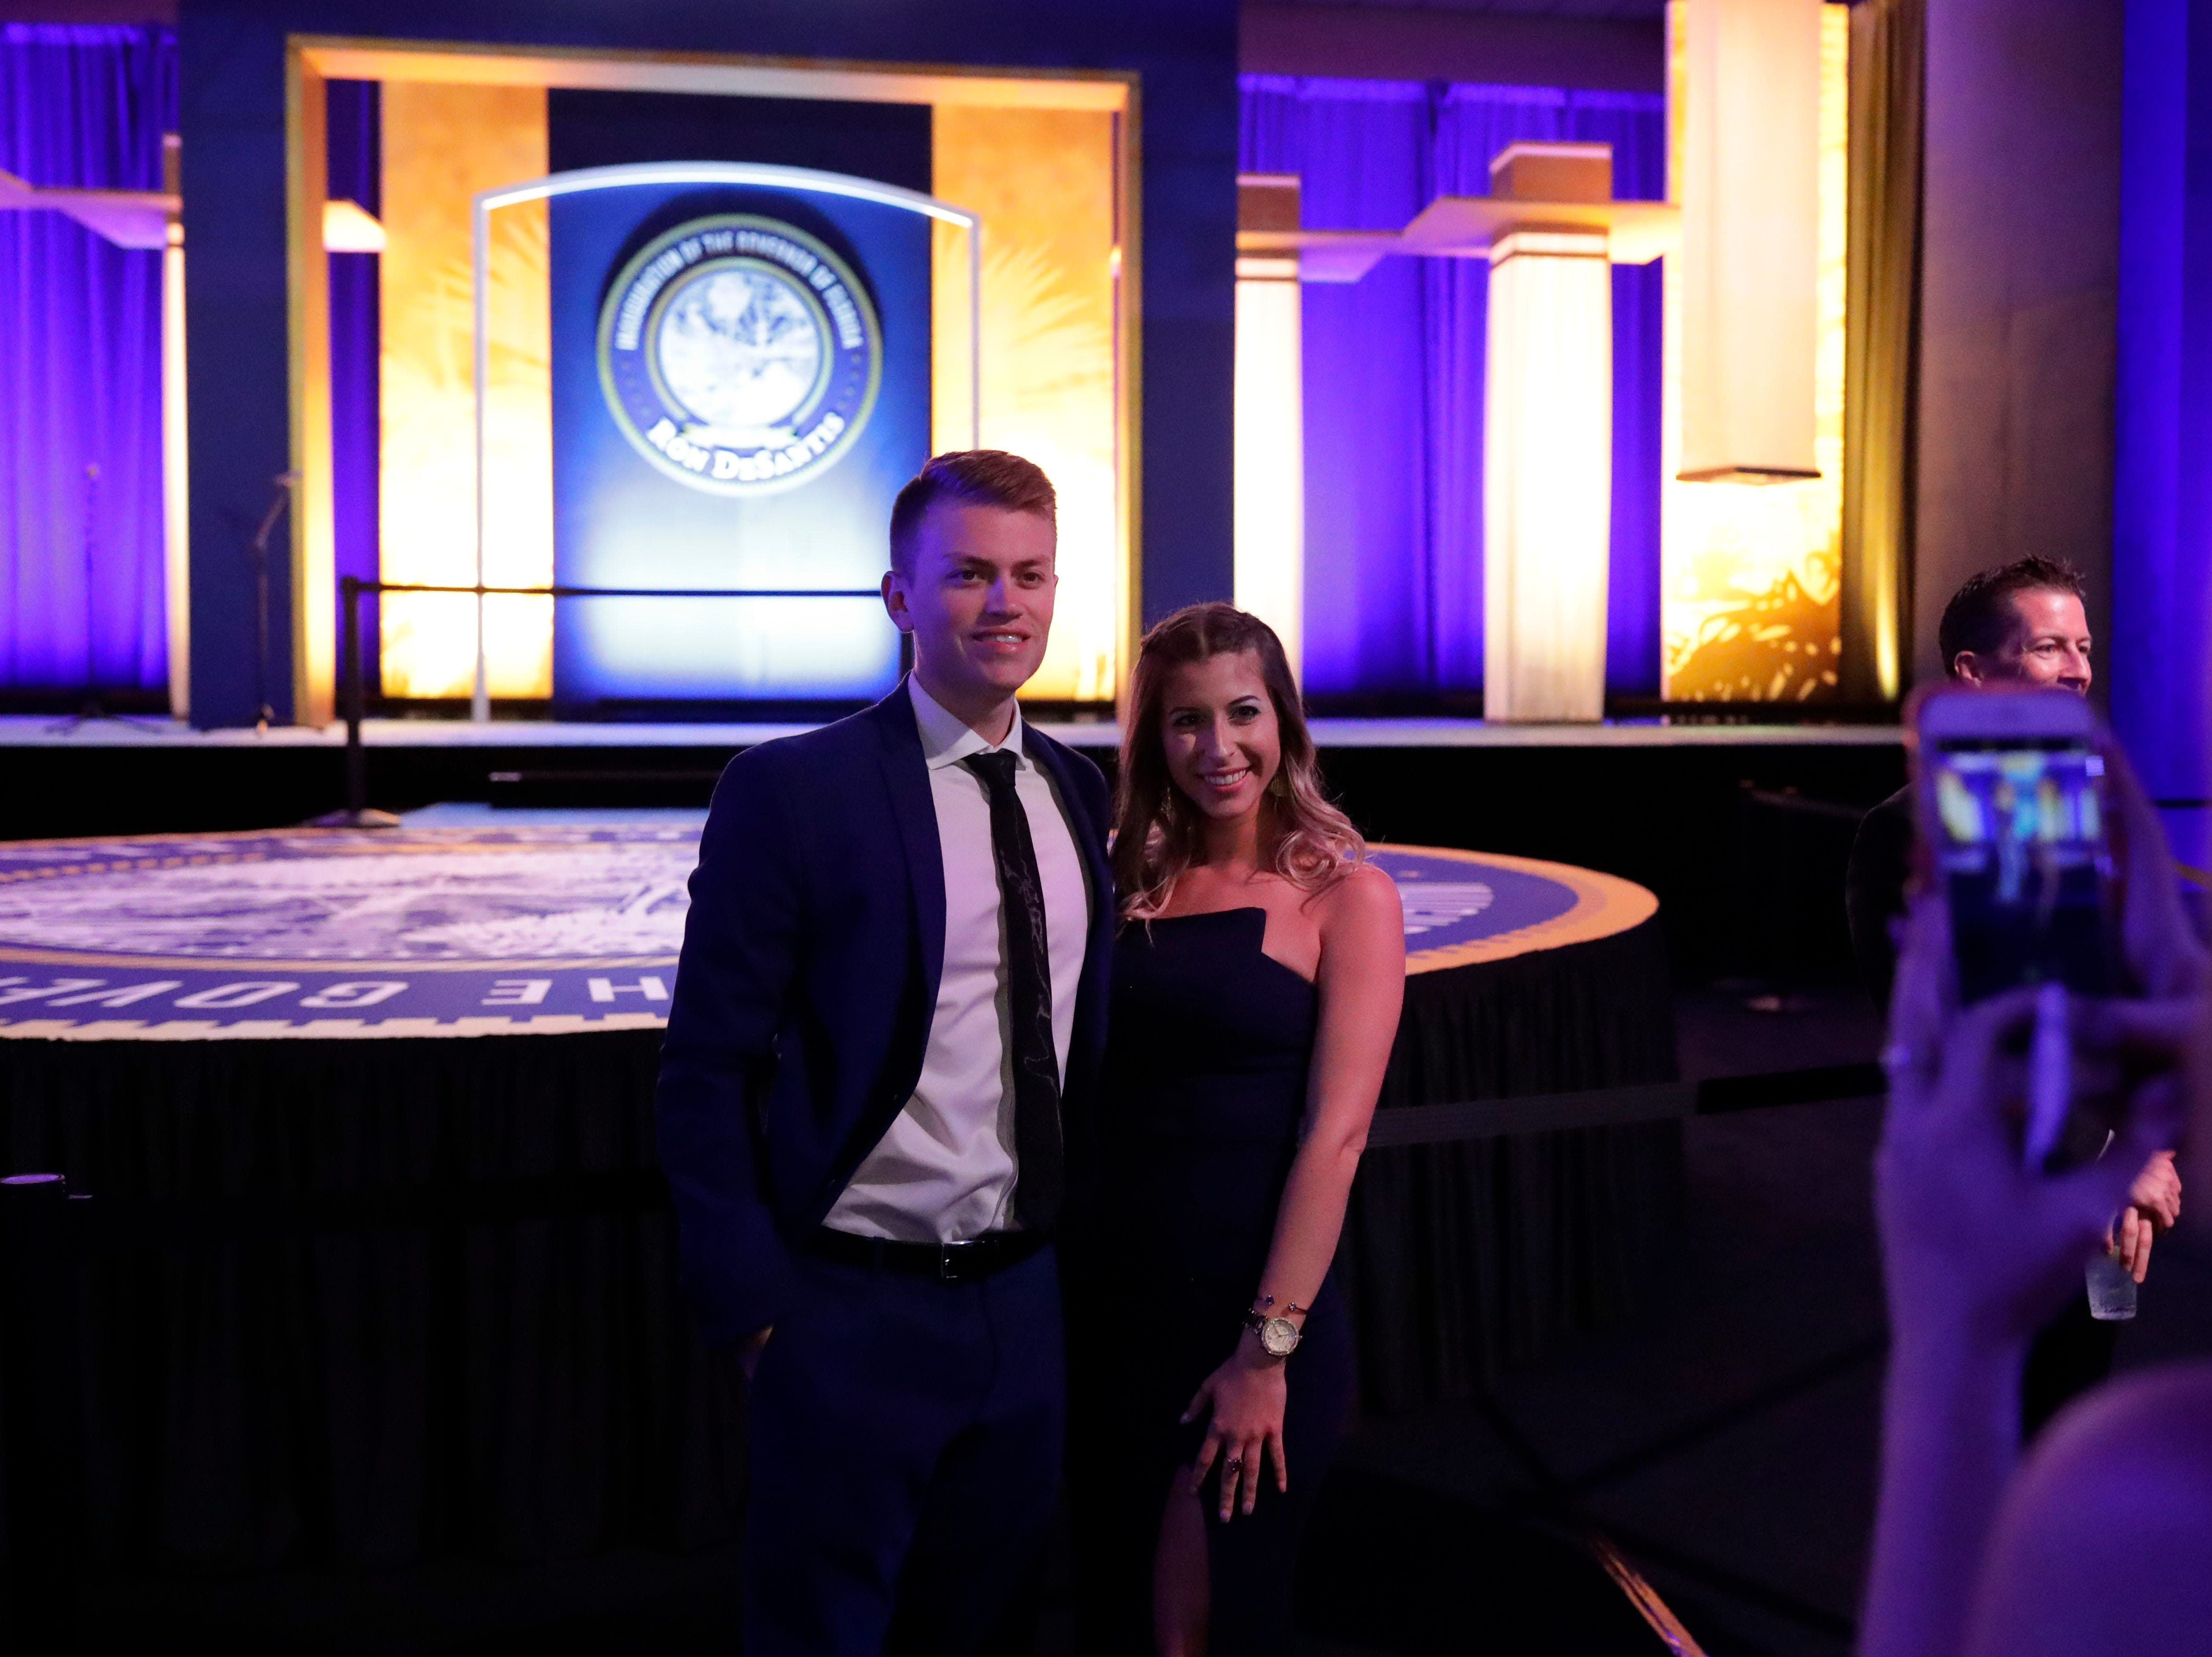 Hundreds of guests from all over Florida attend Florida's 46th Governor's Inaugural Ball at the Tucker Civic Center, Tuesday, Jan. 8, 2019. Guests pose for a photo in front of the main stage.